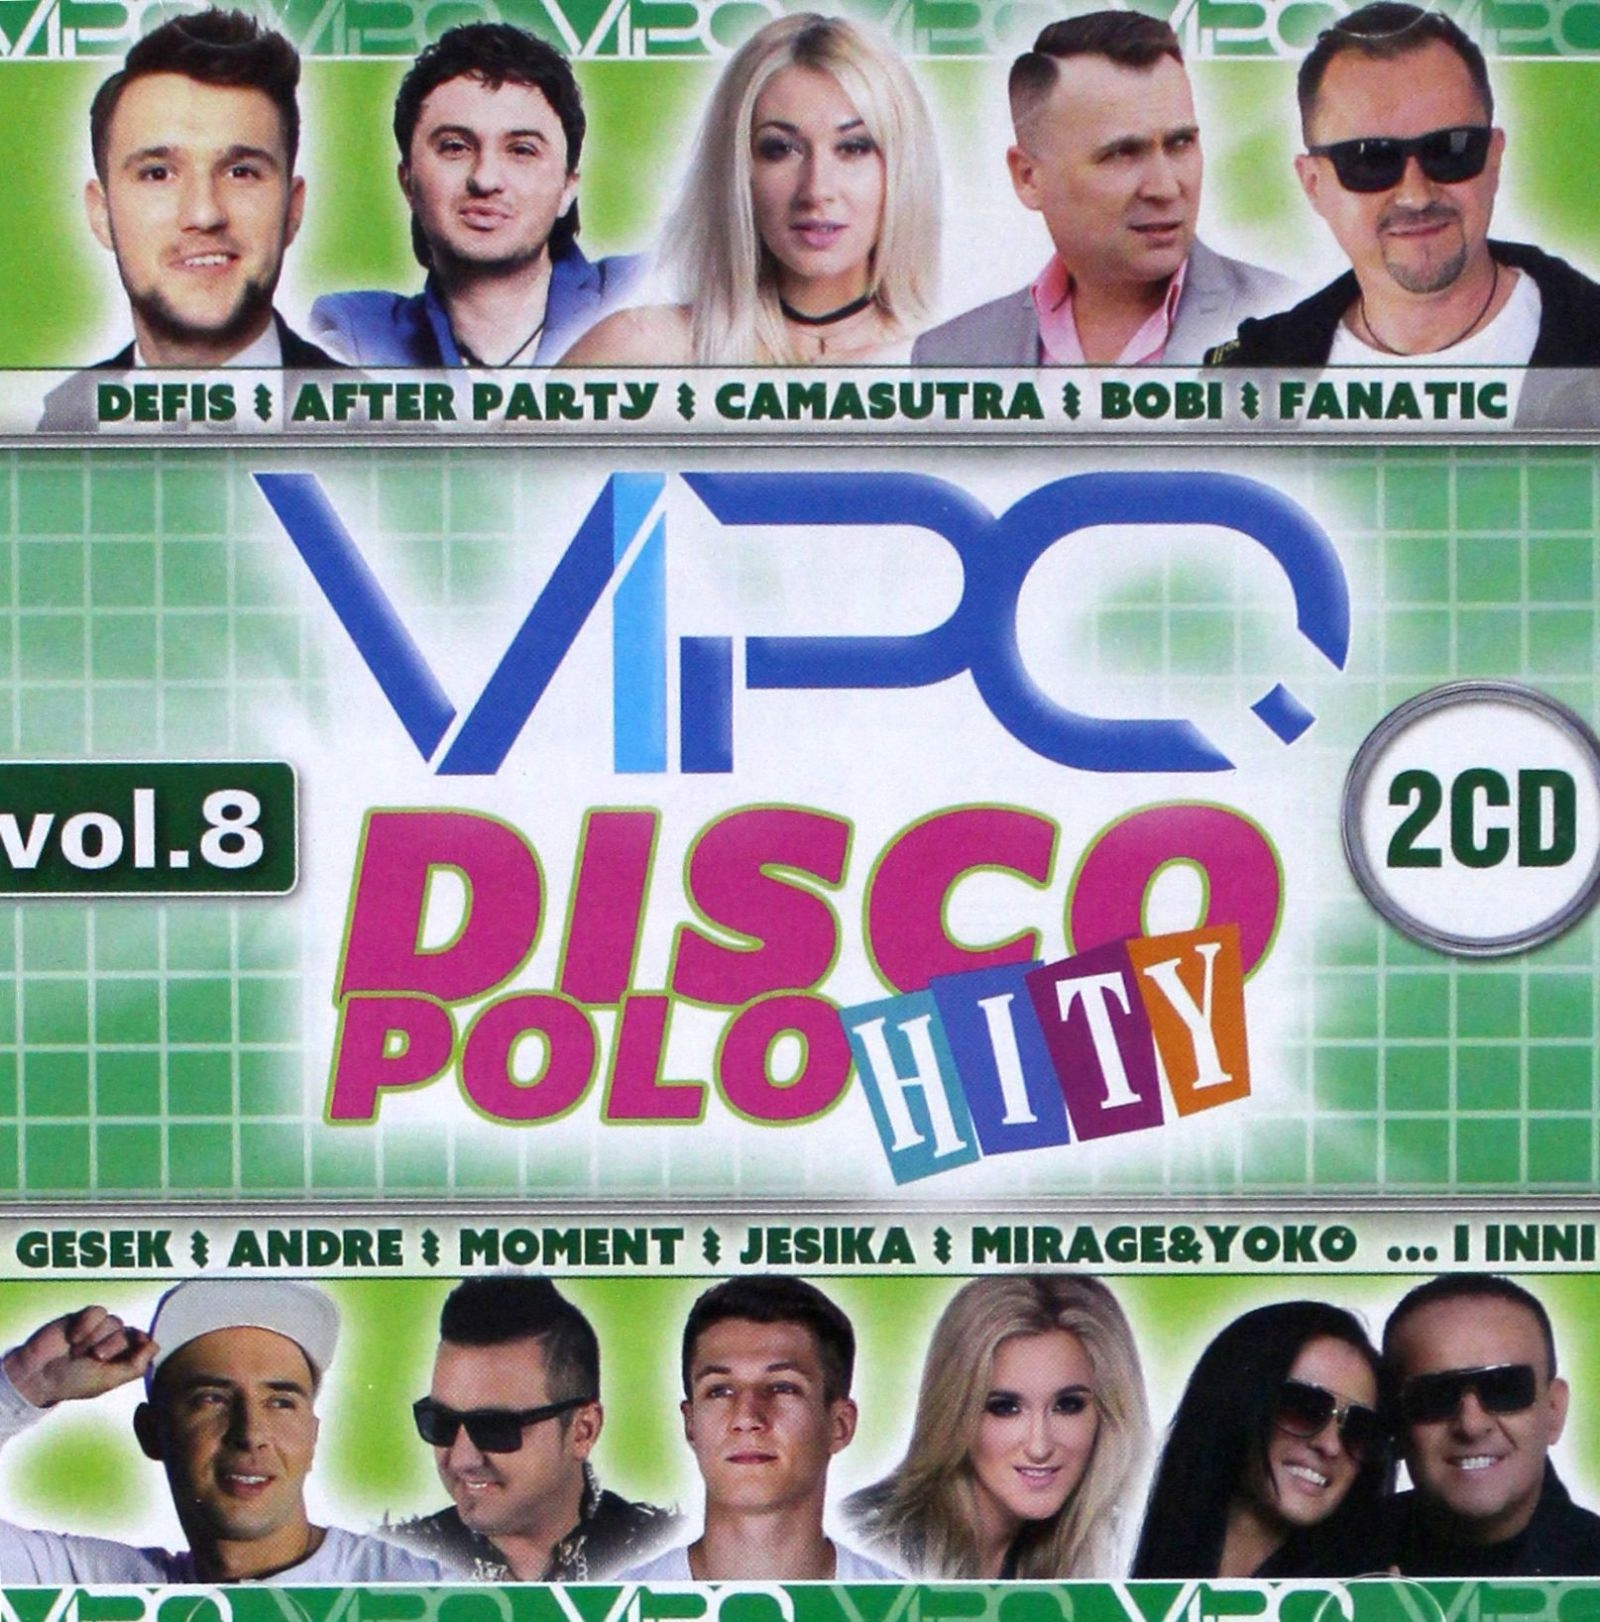 VIPO DISCO POLO HITY VOL. 8 (2CD)